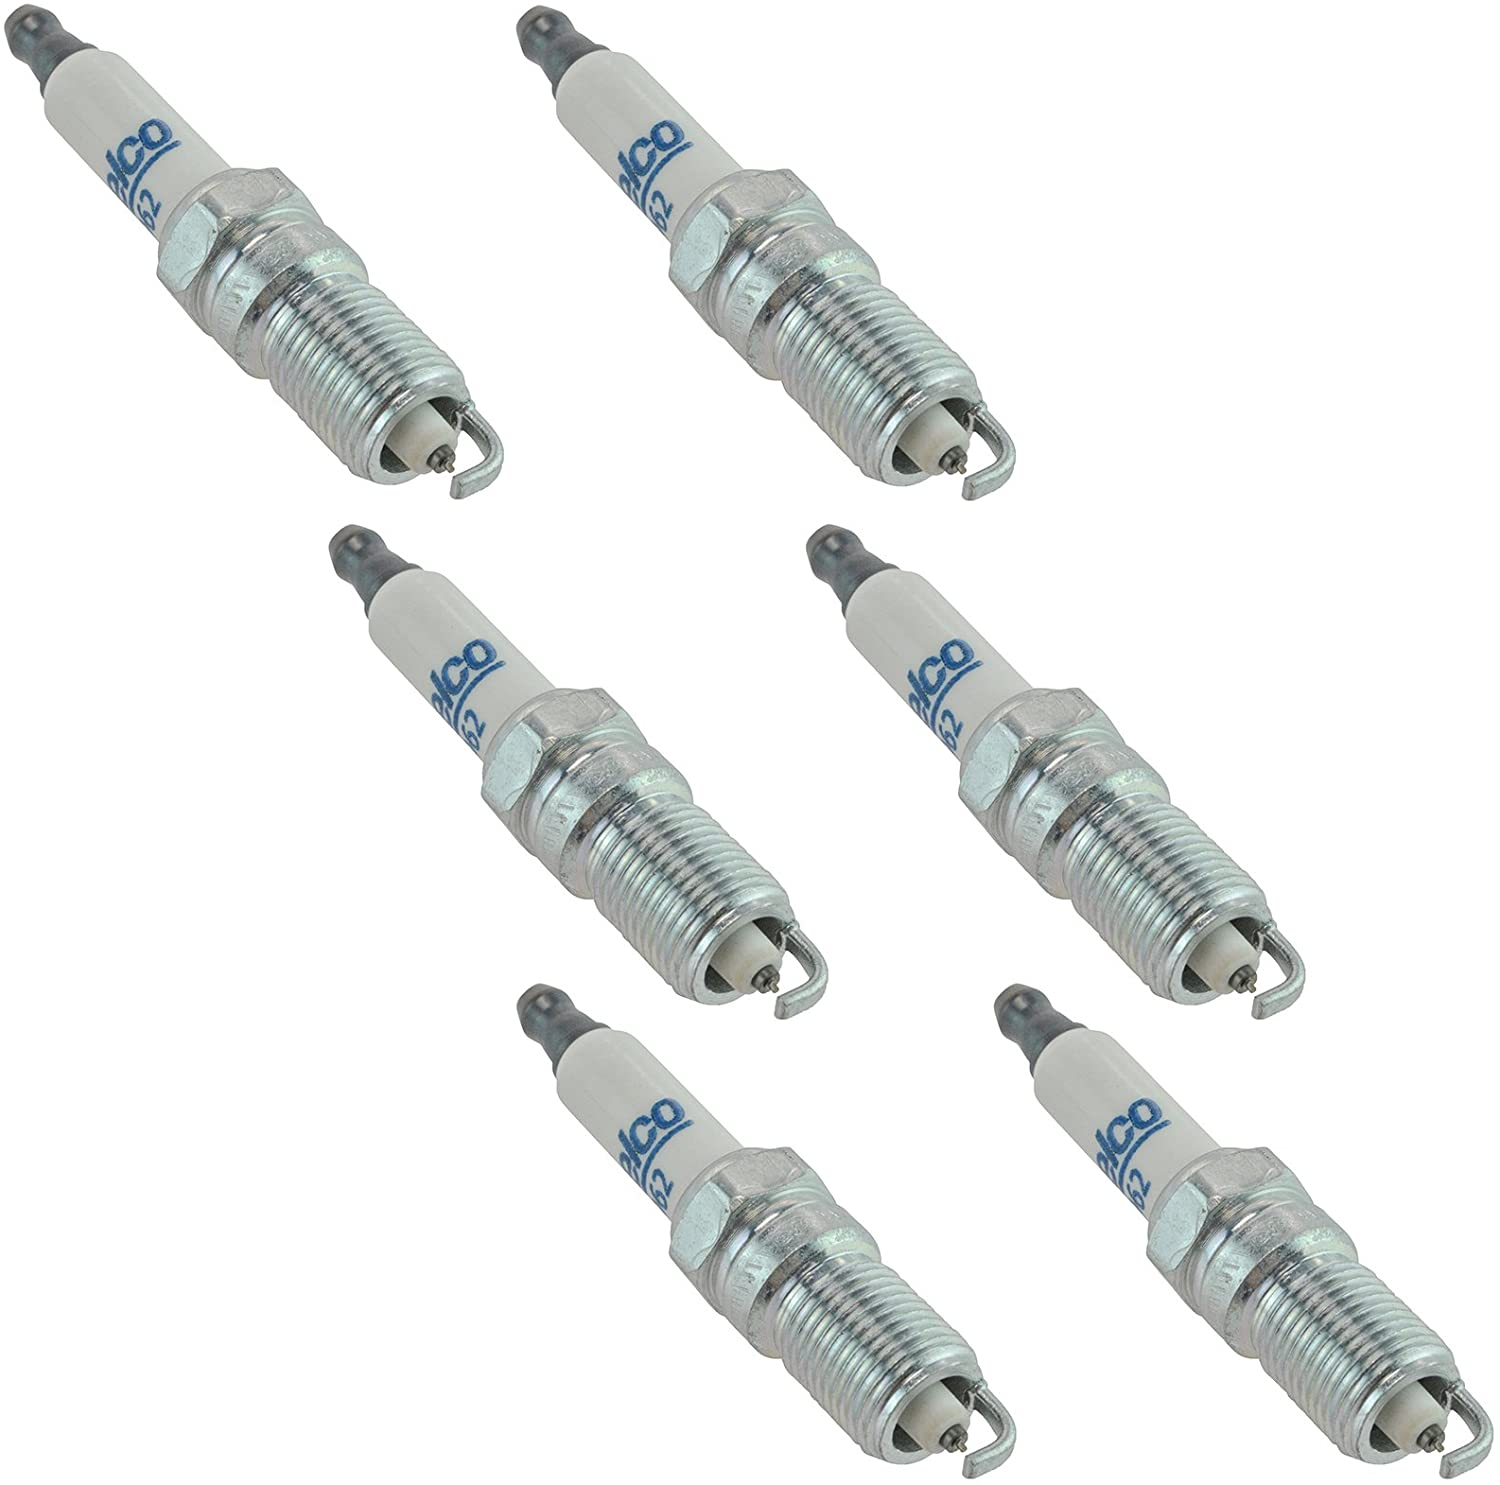 AC Delco 41-962 Product Platinum Ignition Spark Many popular brands of Chevy for Plug Set 6